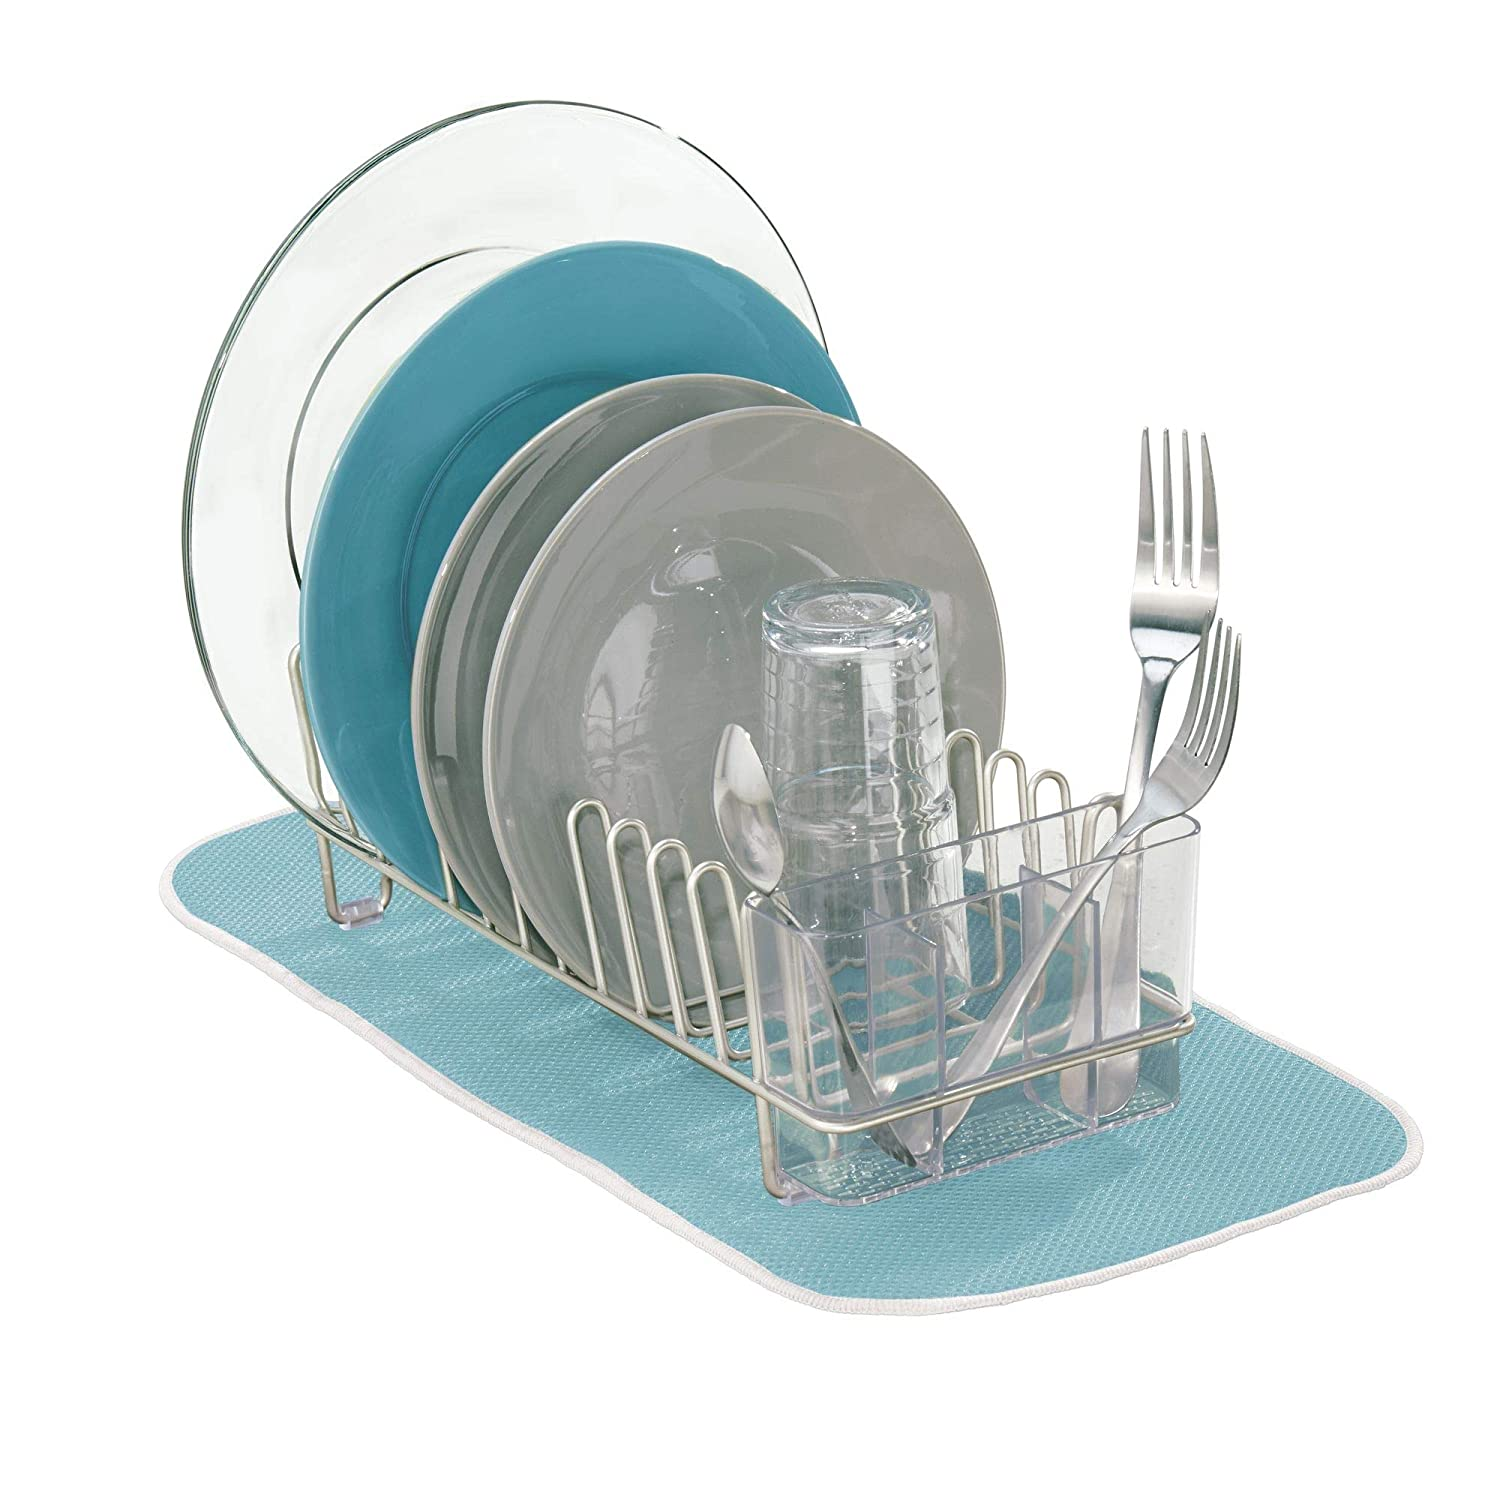 mDesign Compact Modern Metal Dish Drying Rack and Microfiber Mat Set for Kitchen Countertop, Sink - Drain and Dry Wine Glasses, Bowls and Dishes - Removable Cutlery Tray - Set of 2 - Satin/Aqua Blue